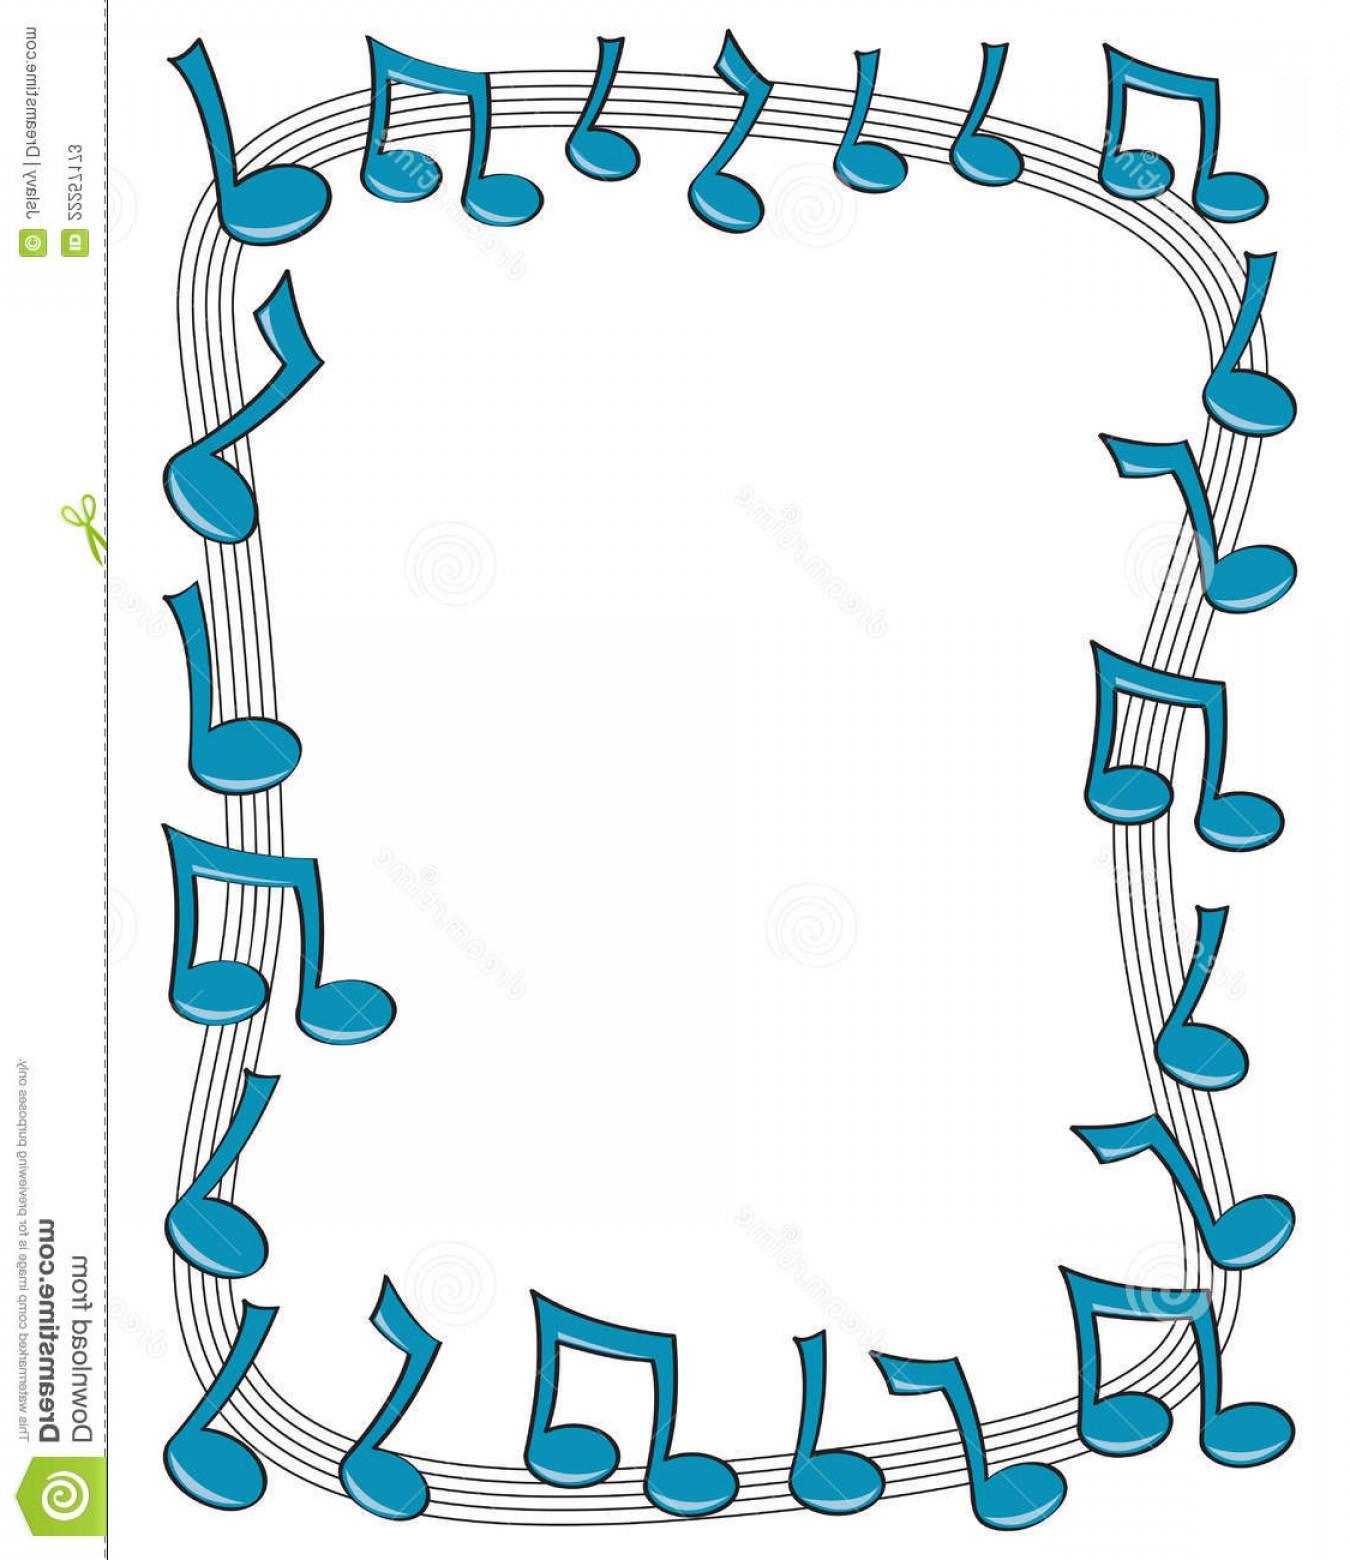 Dancing Musical Notes Vector: Stock Photos Music Note Border Image